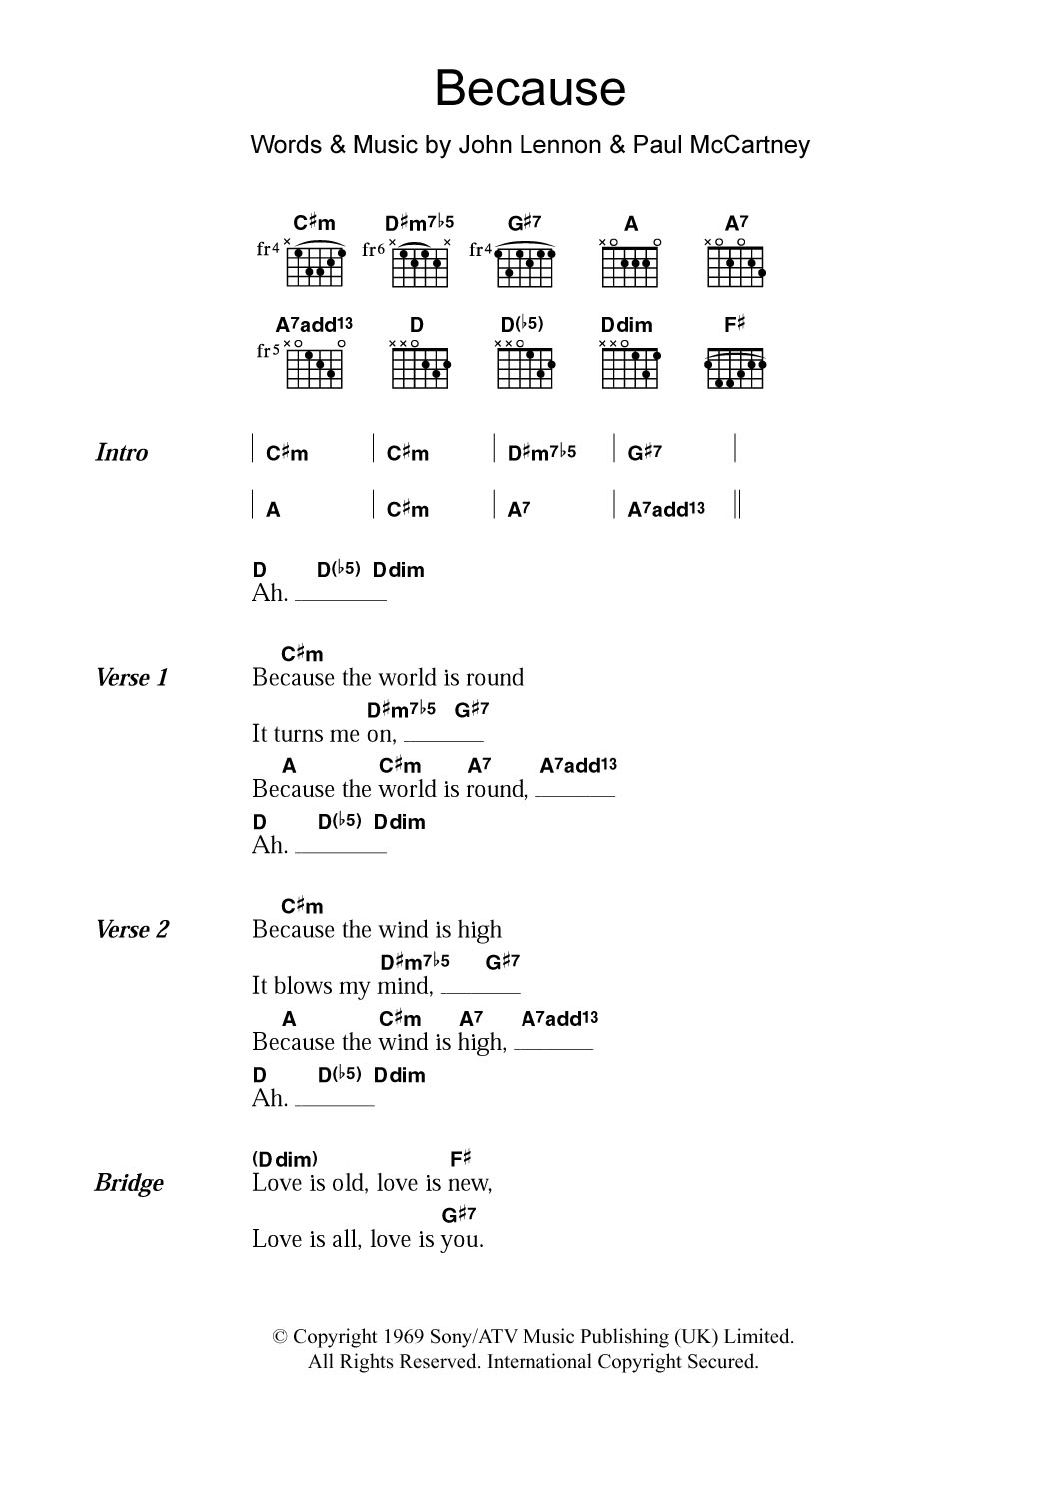 Picture Guitar Chords And Lyrics